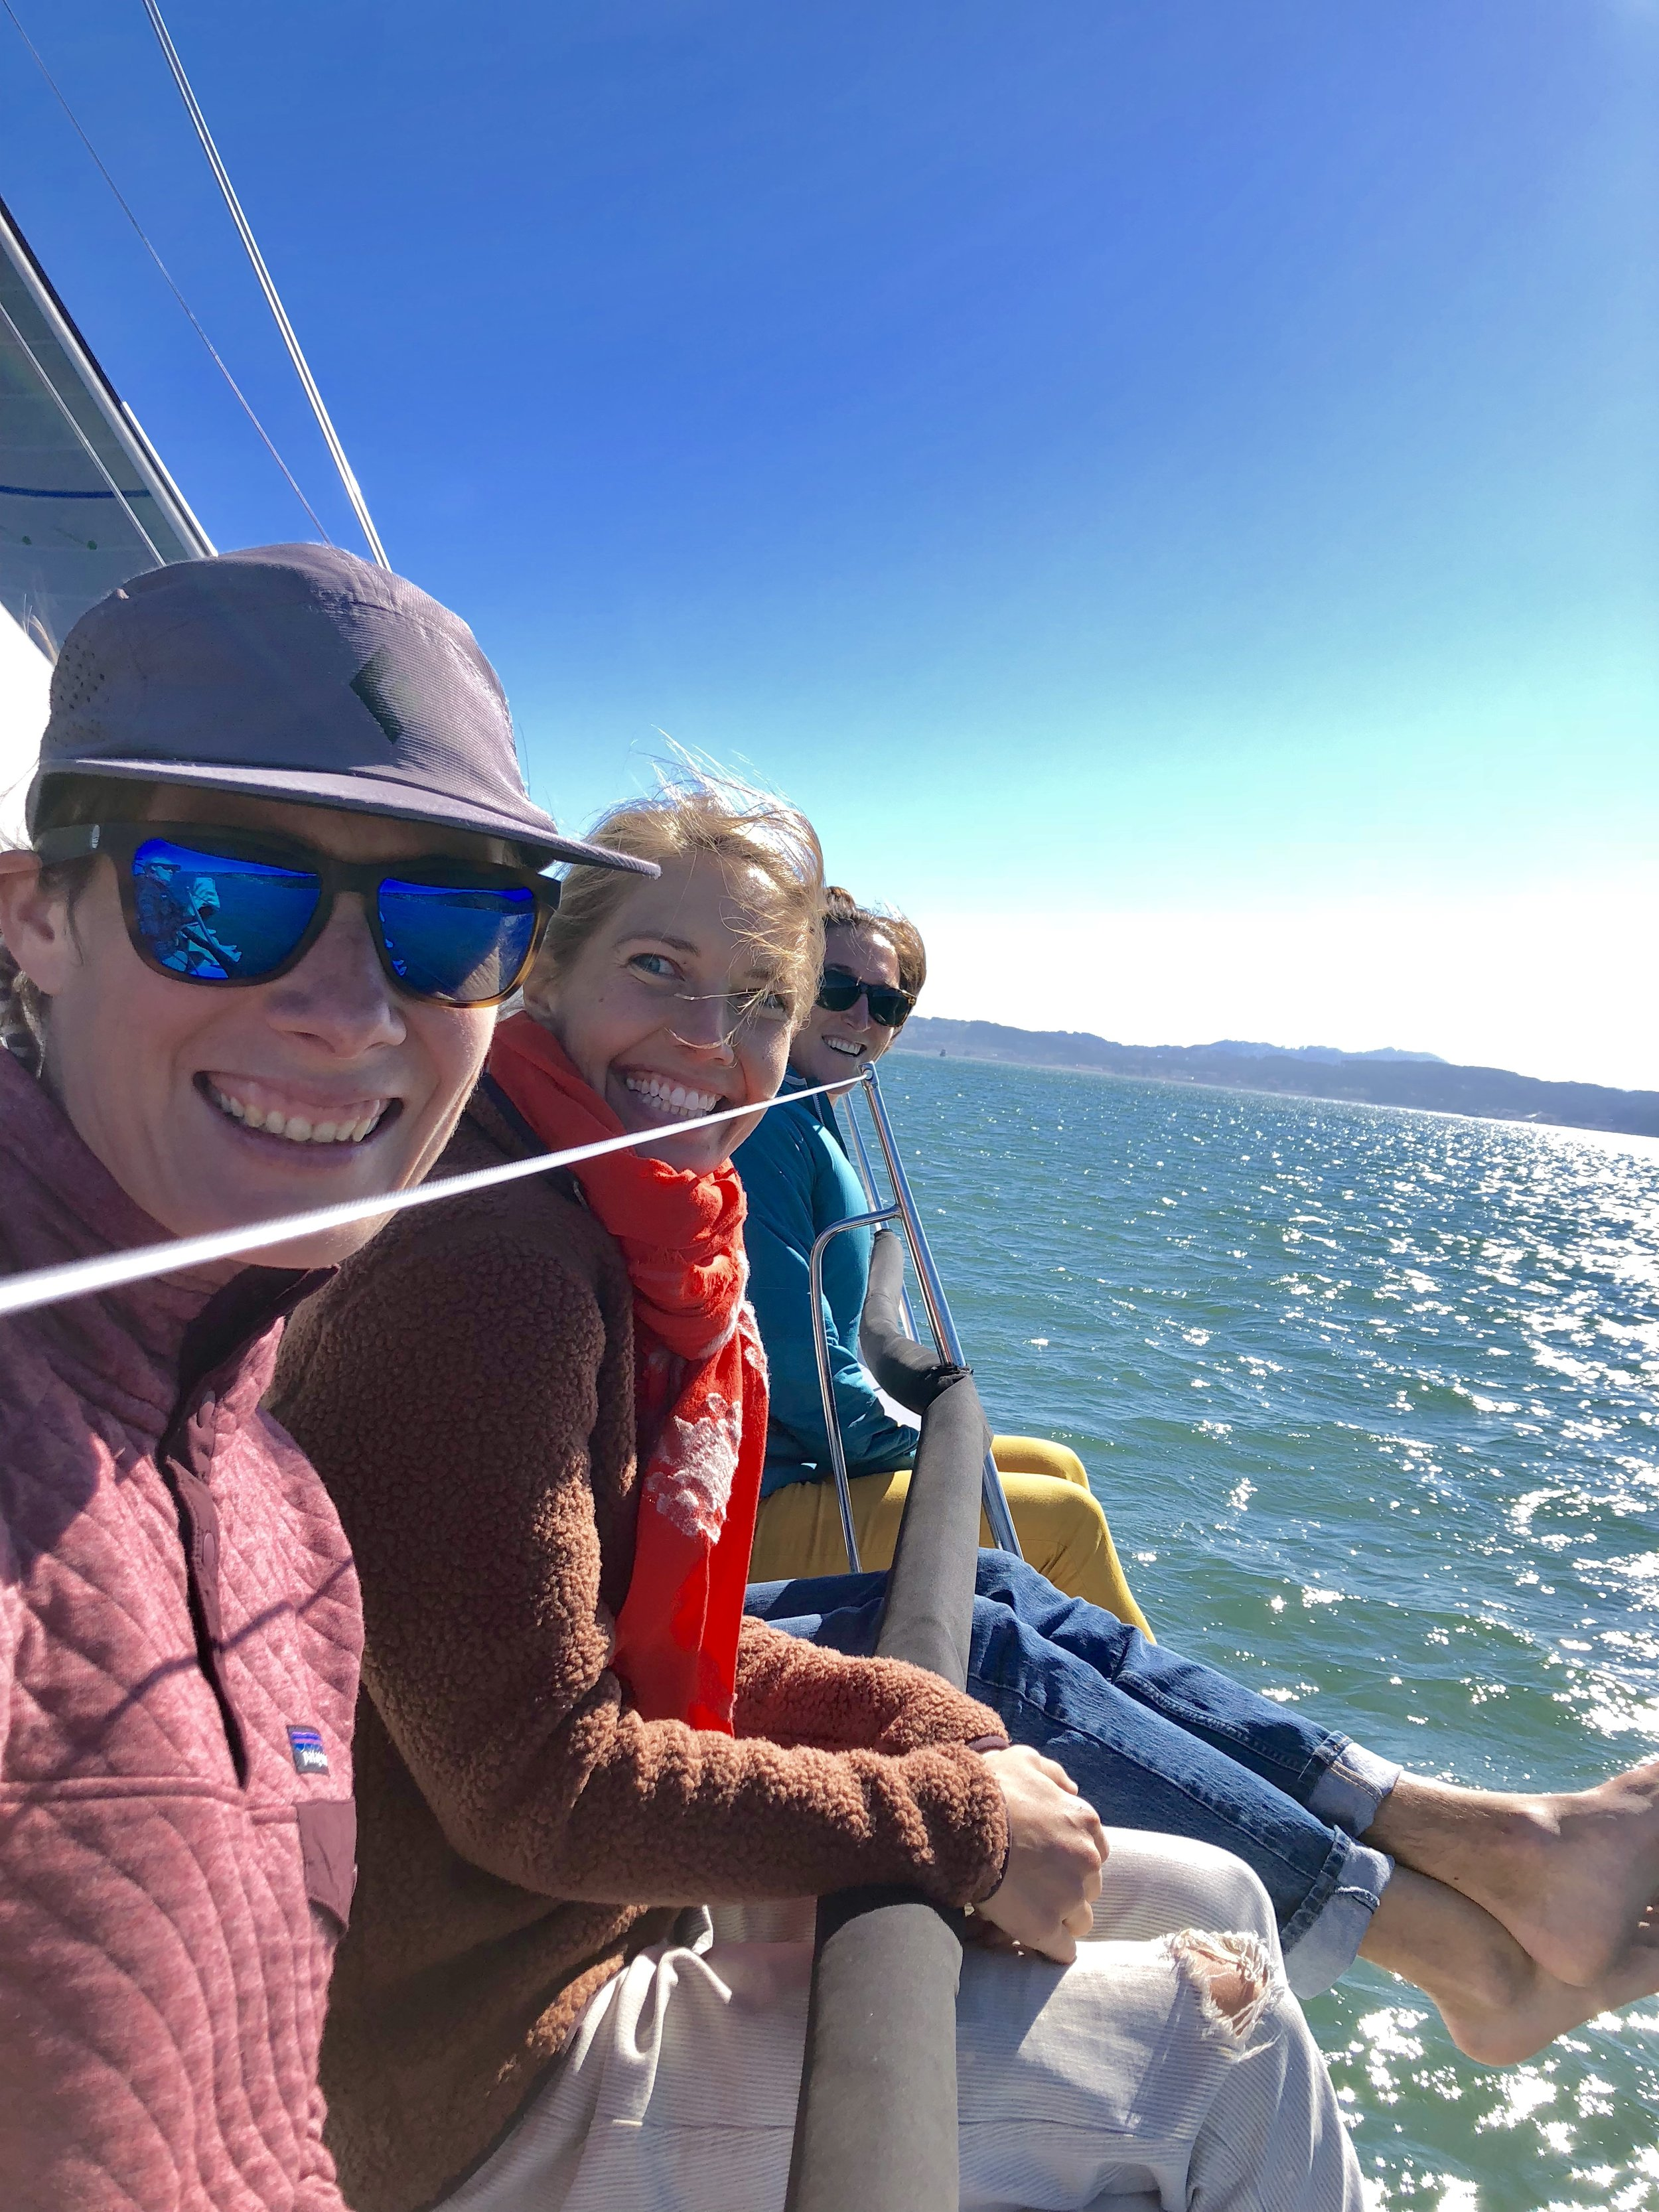 Meriwether, Kristen and Lilly sailing in the Bay.